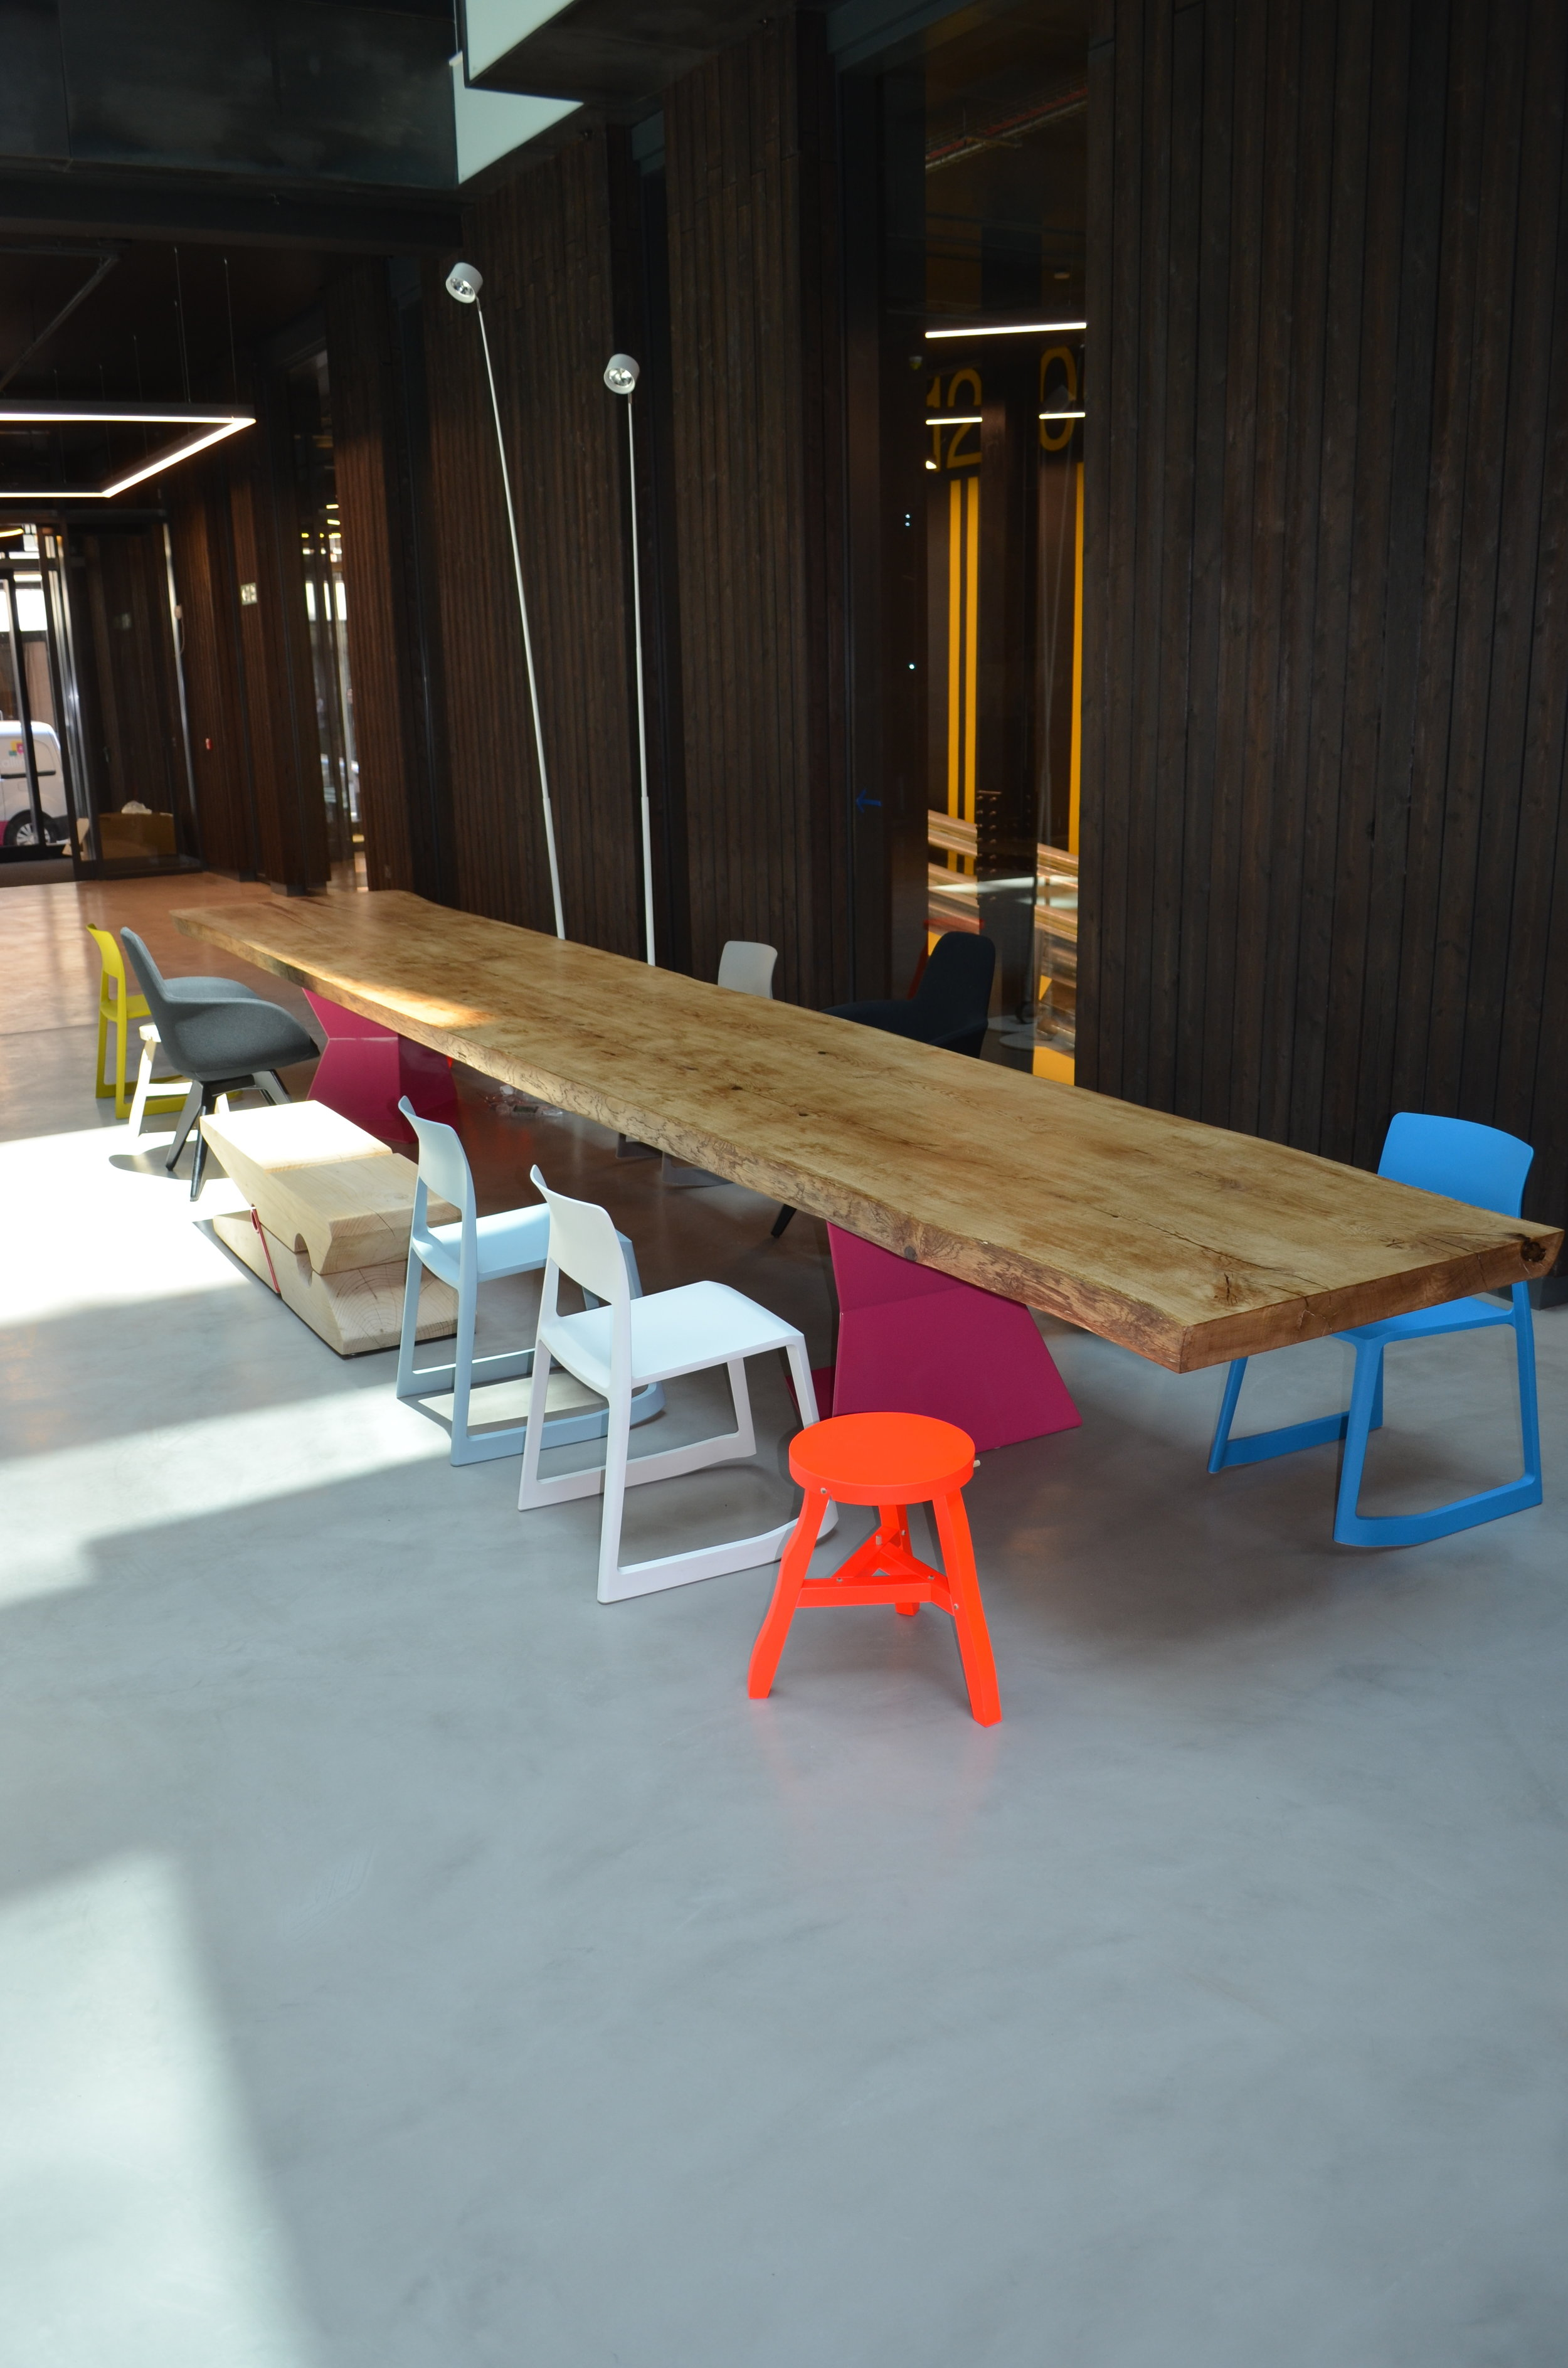 Communal space table at Alphabeta building